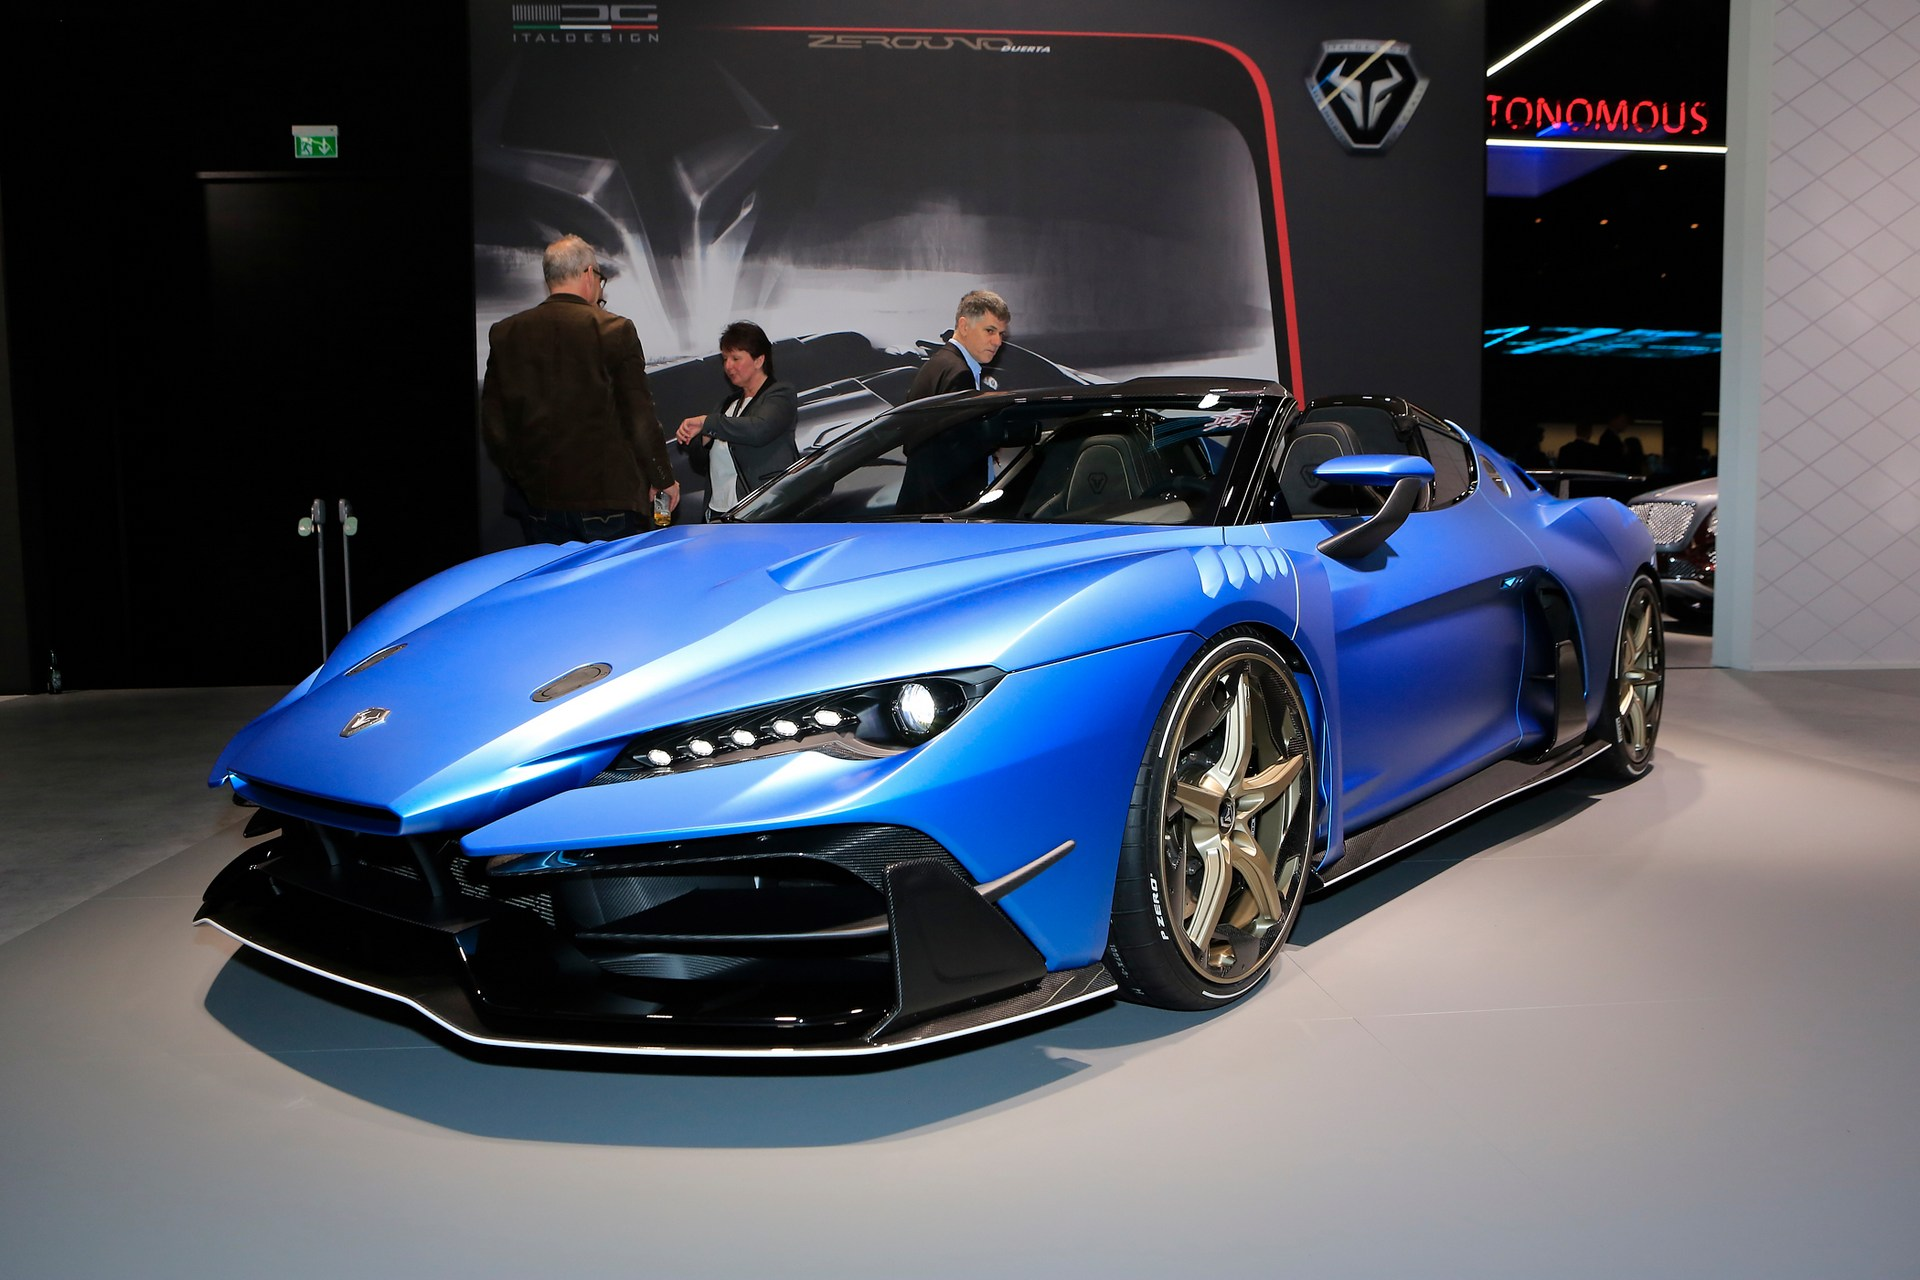 Italdesign Zerouno Duerta Official And Limited To 5 Units